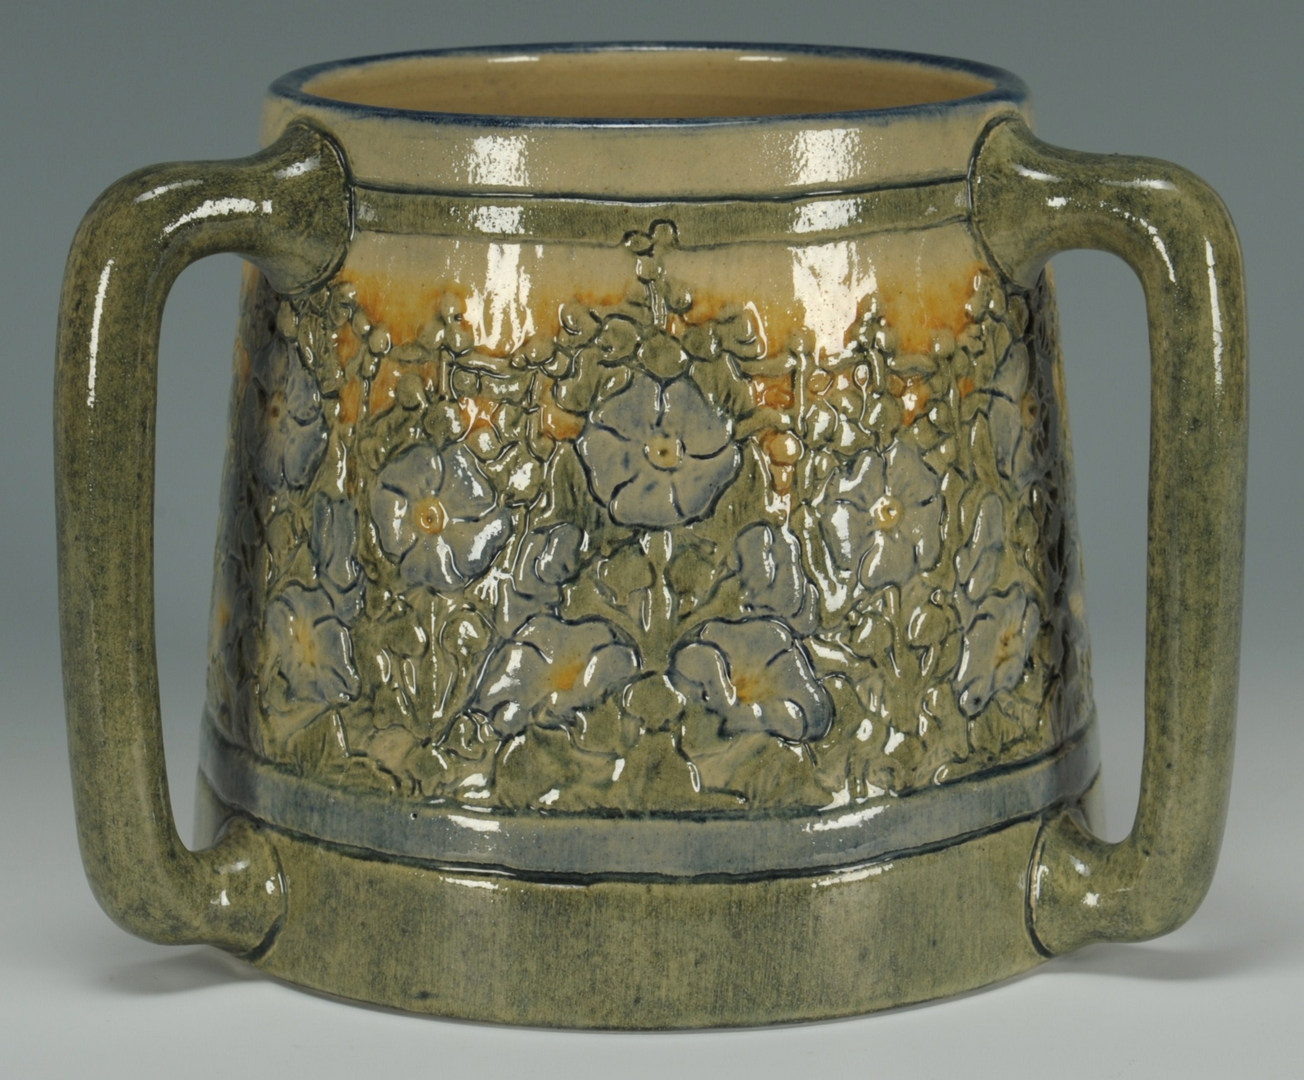 Lot 129: Newcomb Art Pottery Loving Cup by Leona Nicholson